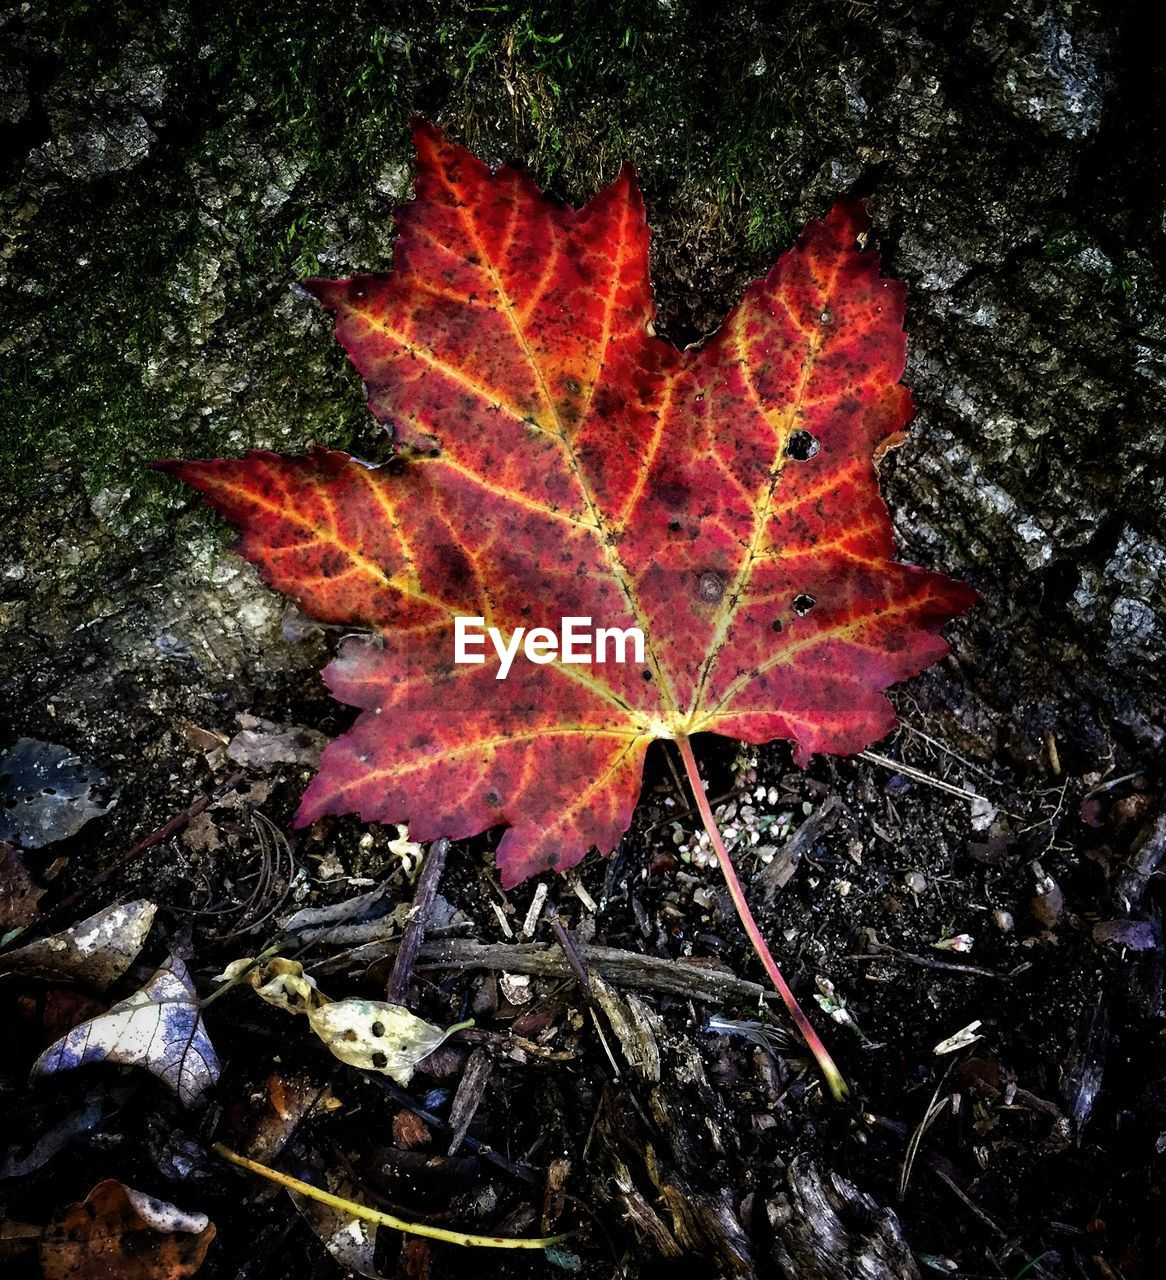 autumn, leaf, change, maple leaf, maple, nature, leaves, dry, beauty in nature, outdoors, high angle view, fallen, day, no people, close-up, red, fragility